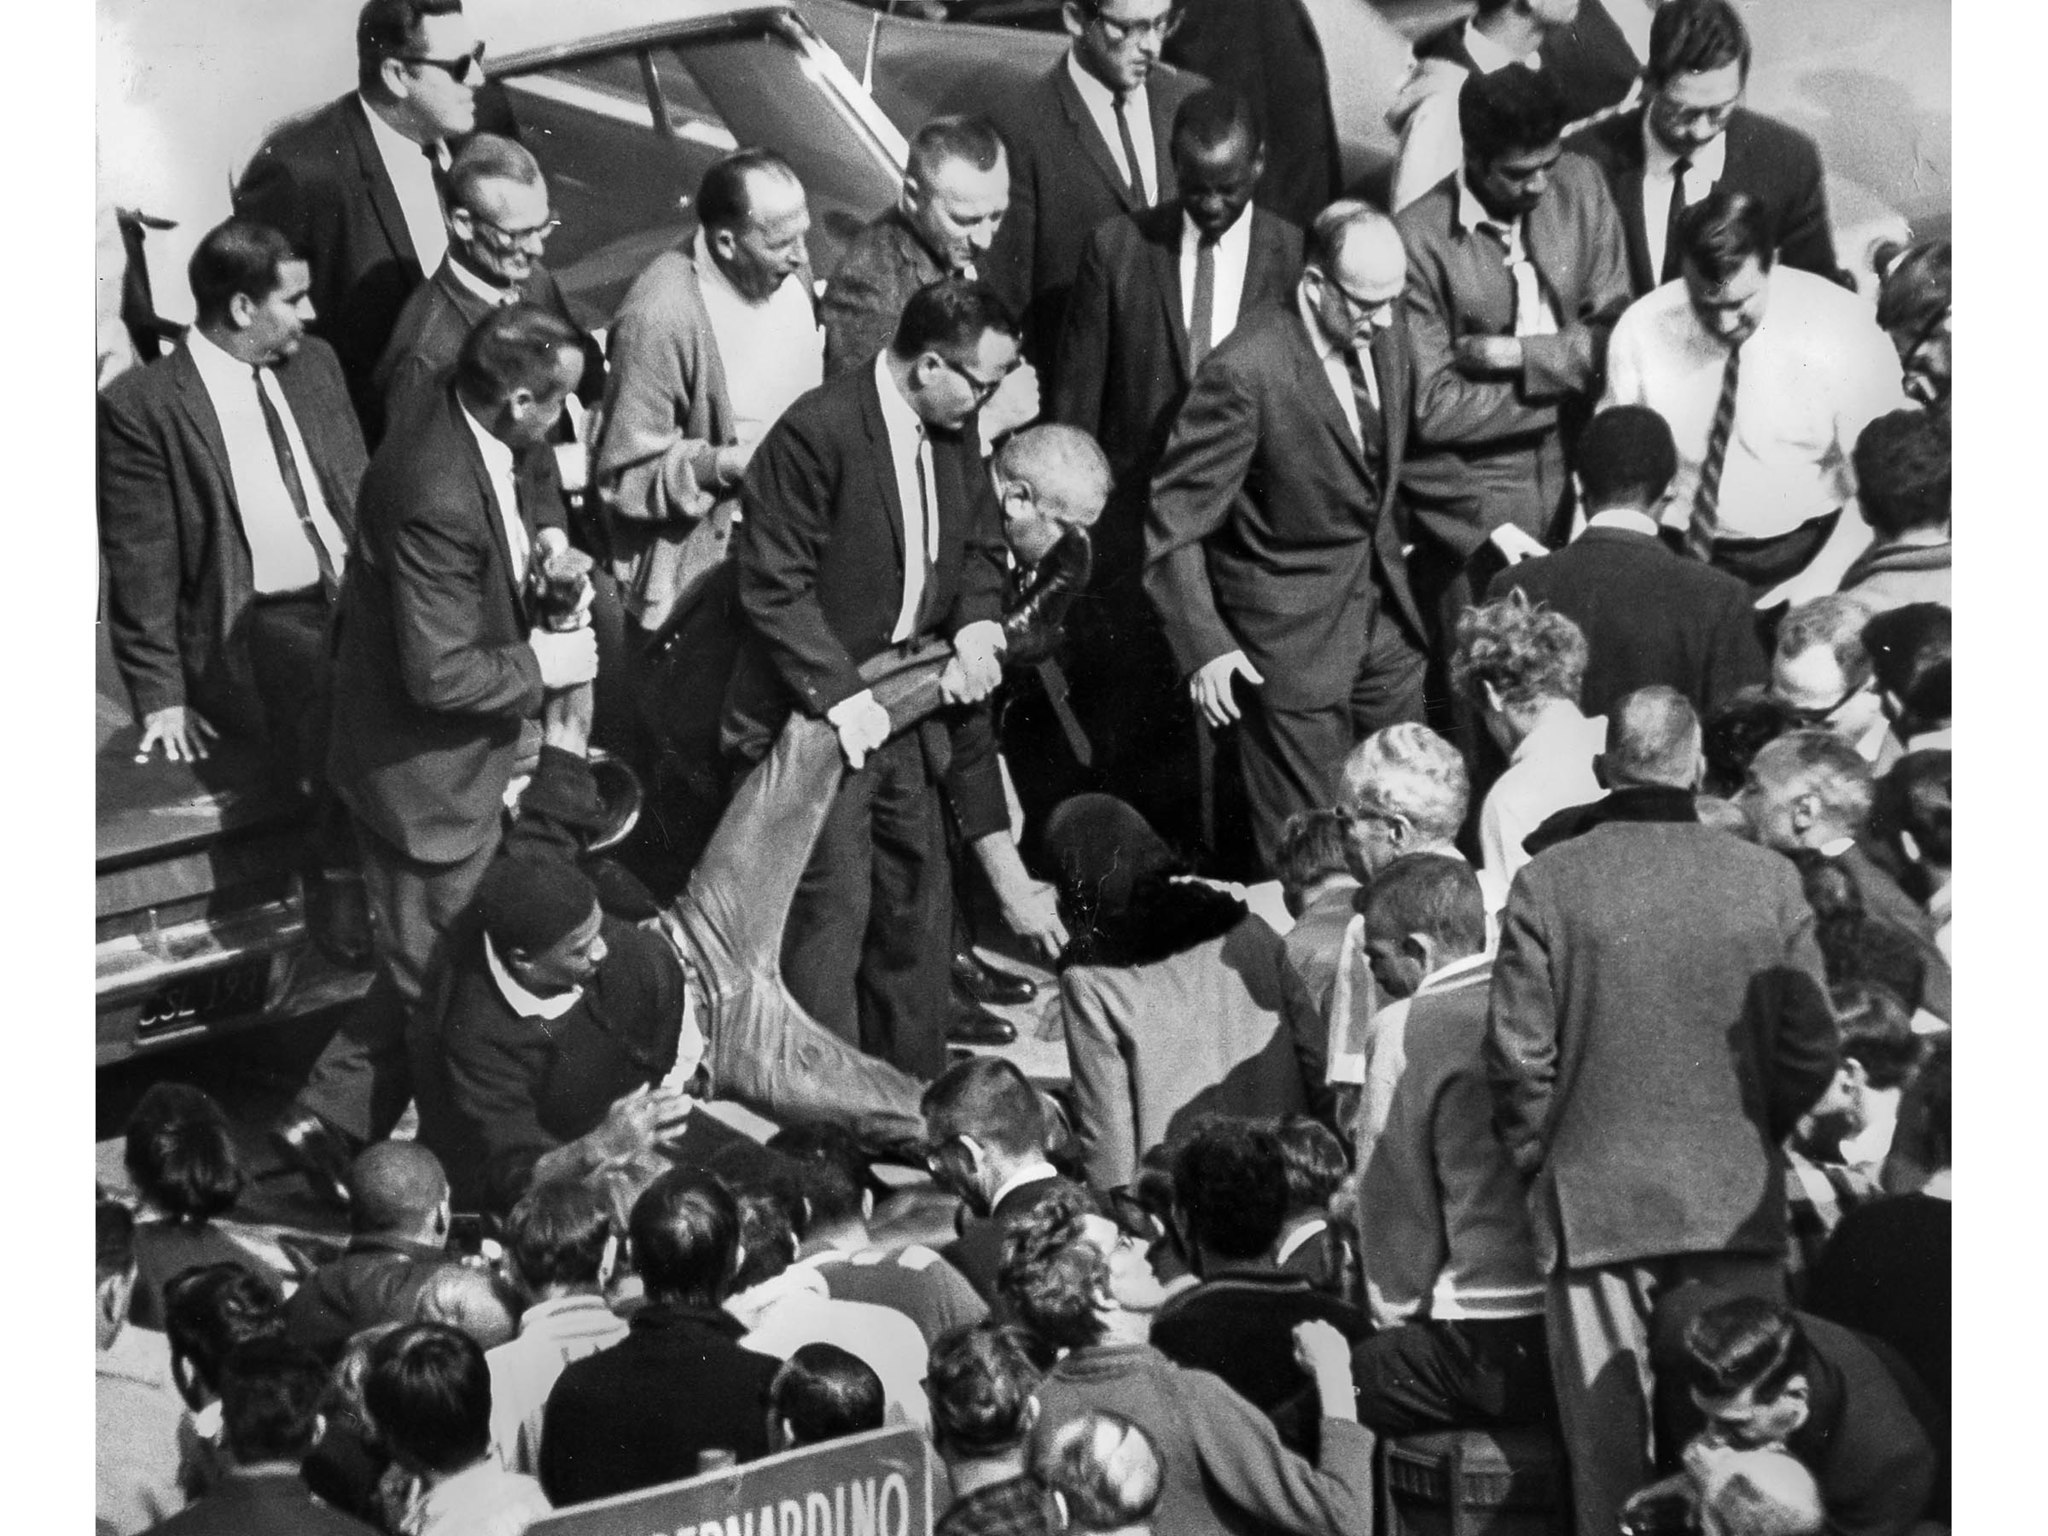 March 10, 1965: One of the sit-in demonstrators is lifted by an arm and leg as he is removed from pa